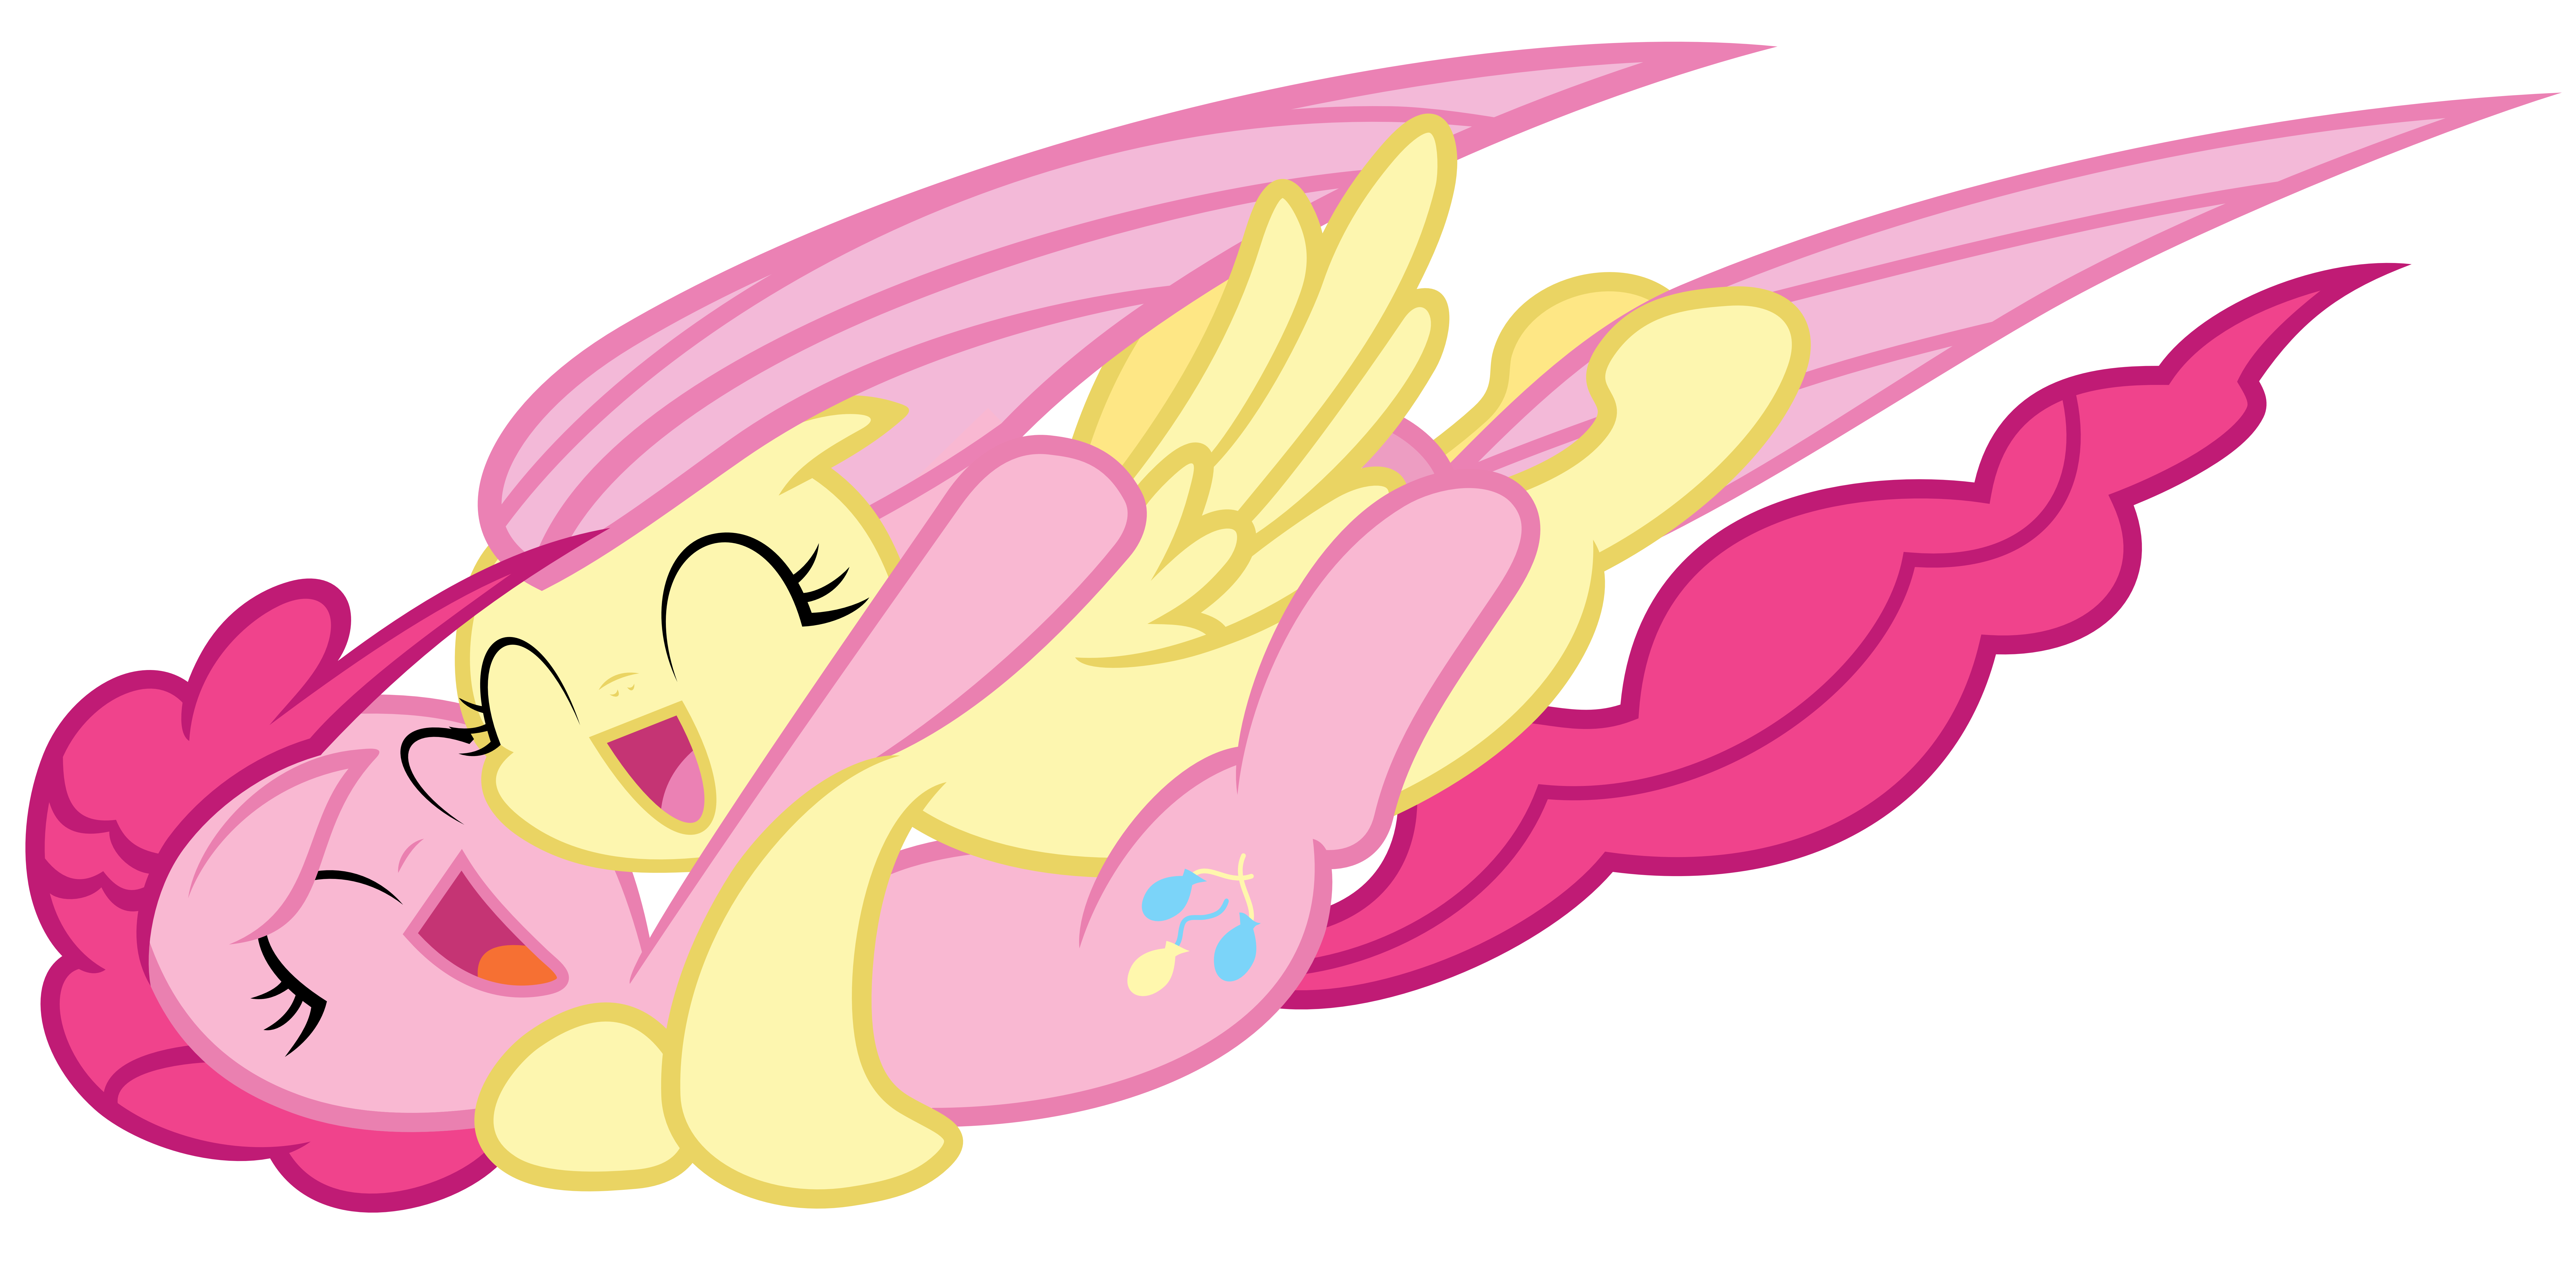 Displaying 20 gt images for smile hd pinkie pie